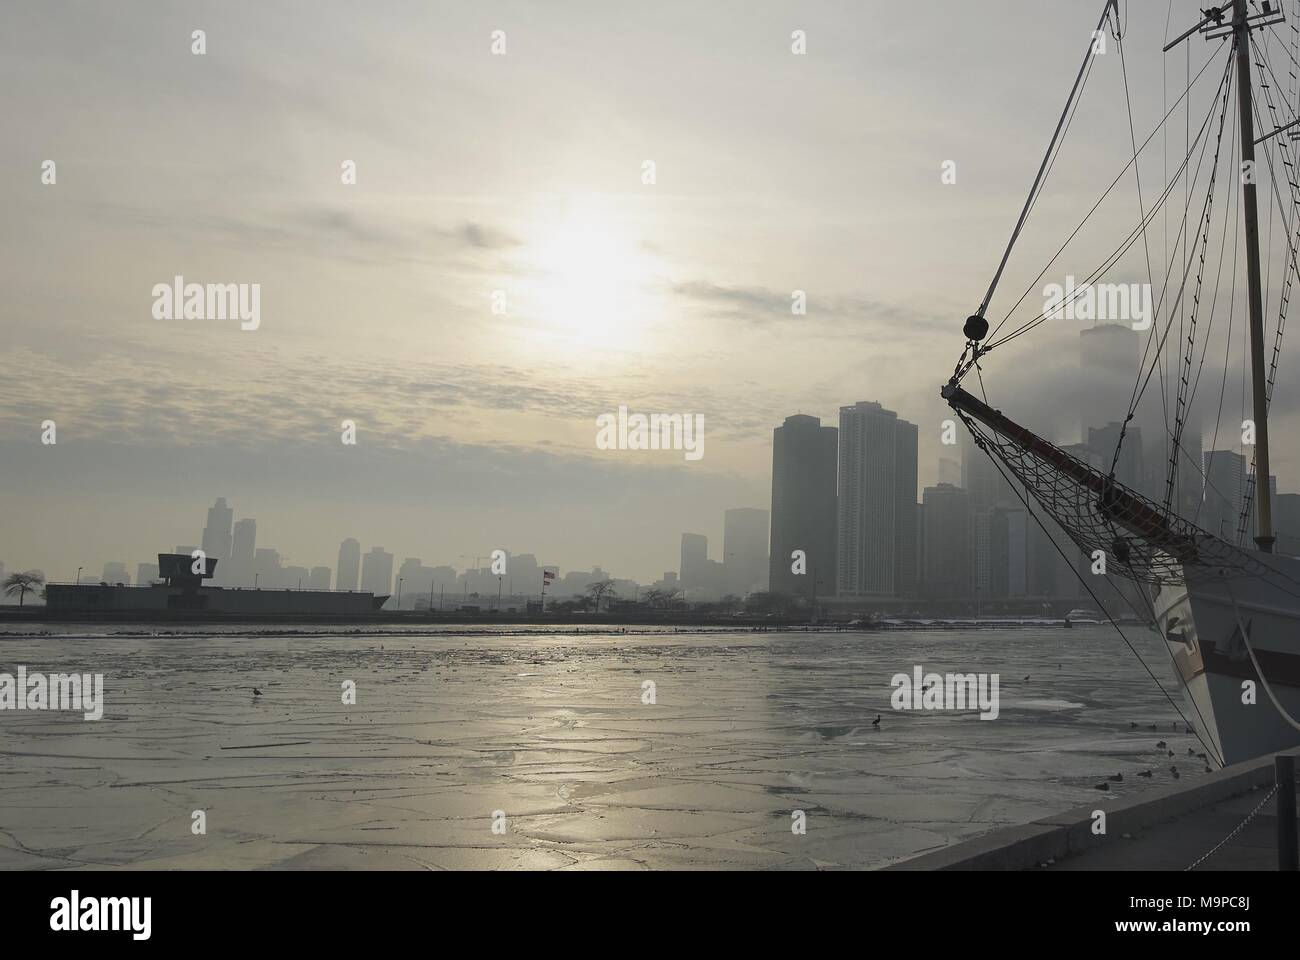 Chicago winter skyline over water with city and horizon over water and silhouette of ship mast in foreground - Stock Image